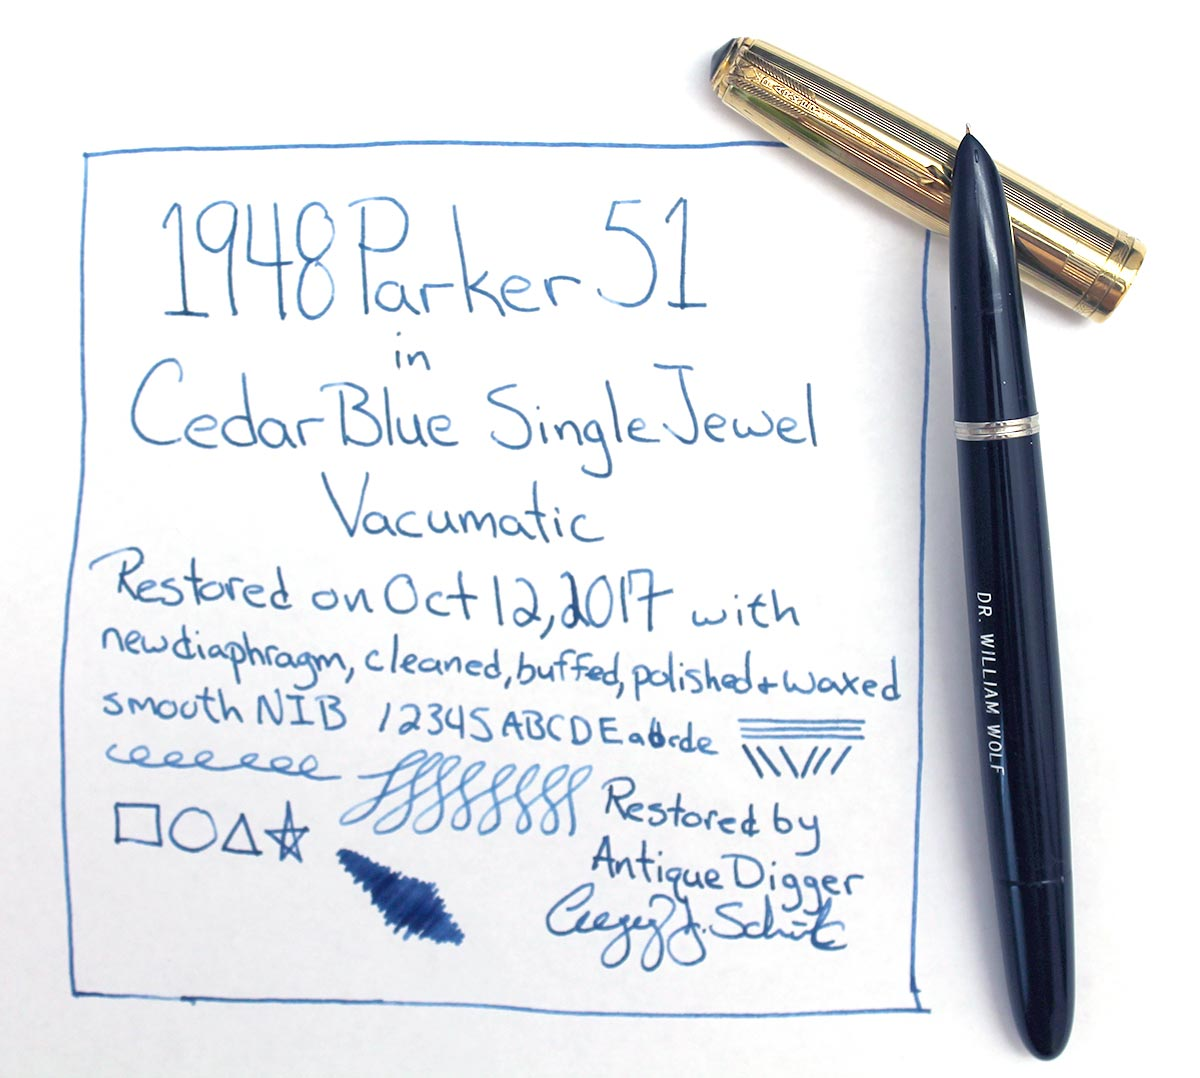 1948 PARKER 51 VACUMATIC CEDAR BLUE GOLD FILLED CAP FOUNTAIN PEN RESTORED